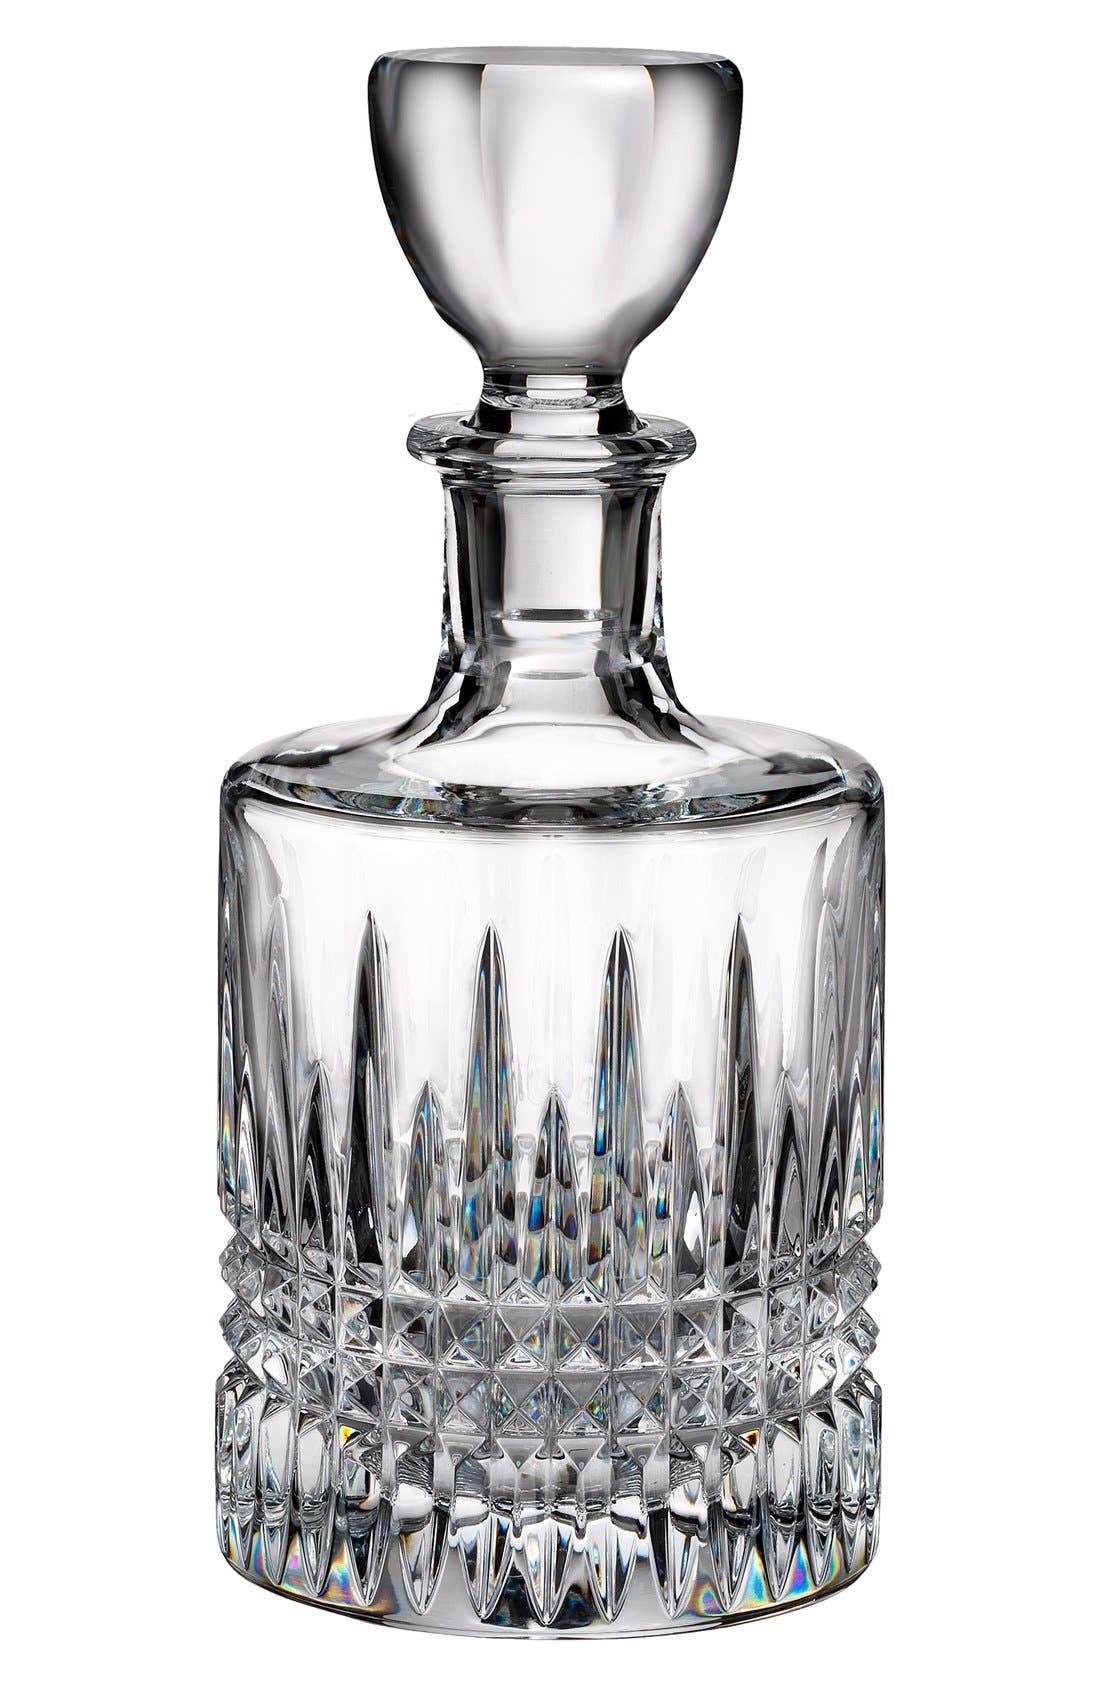 Waterford 'Lismore' Lead Crystal Decanter & Stopper